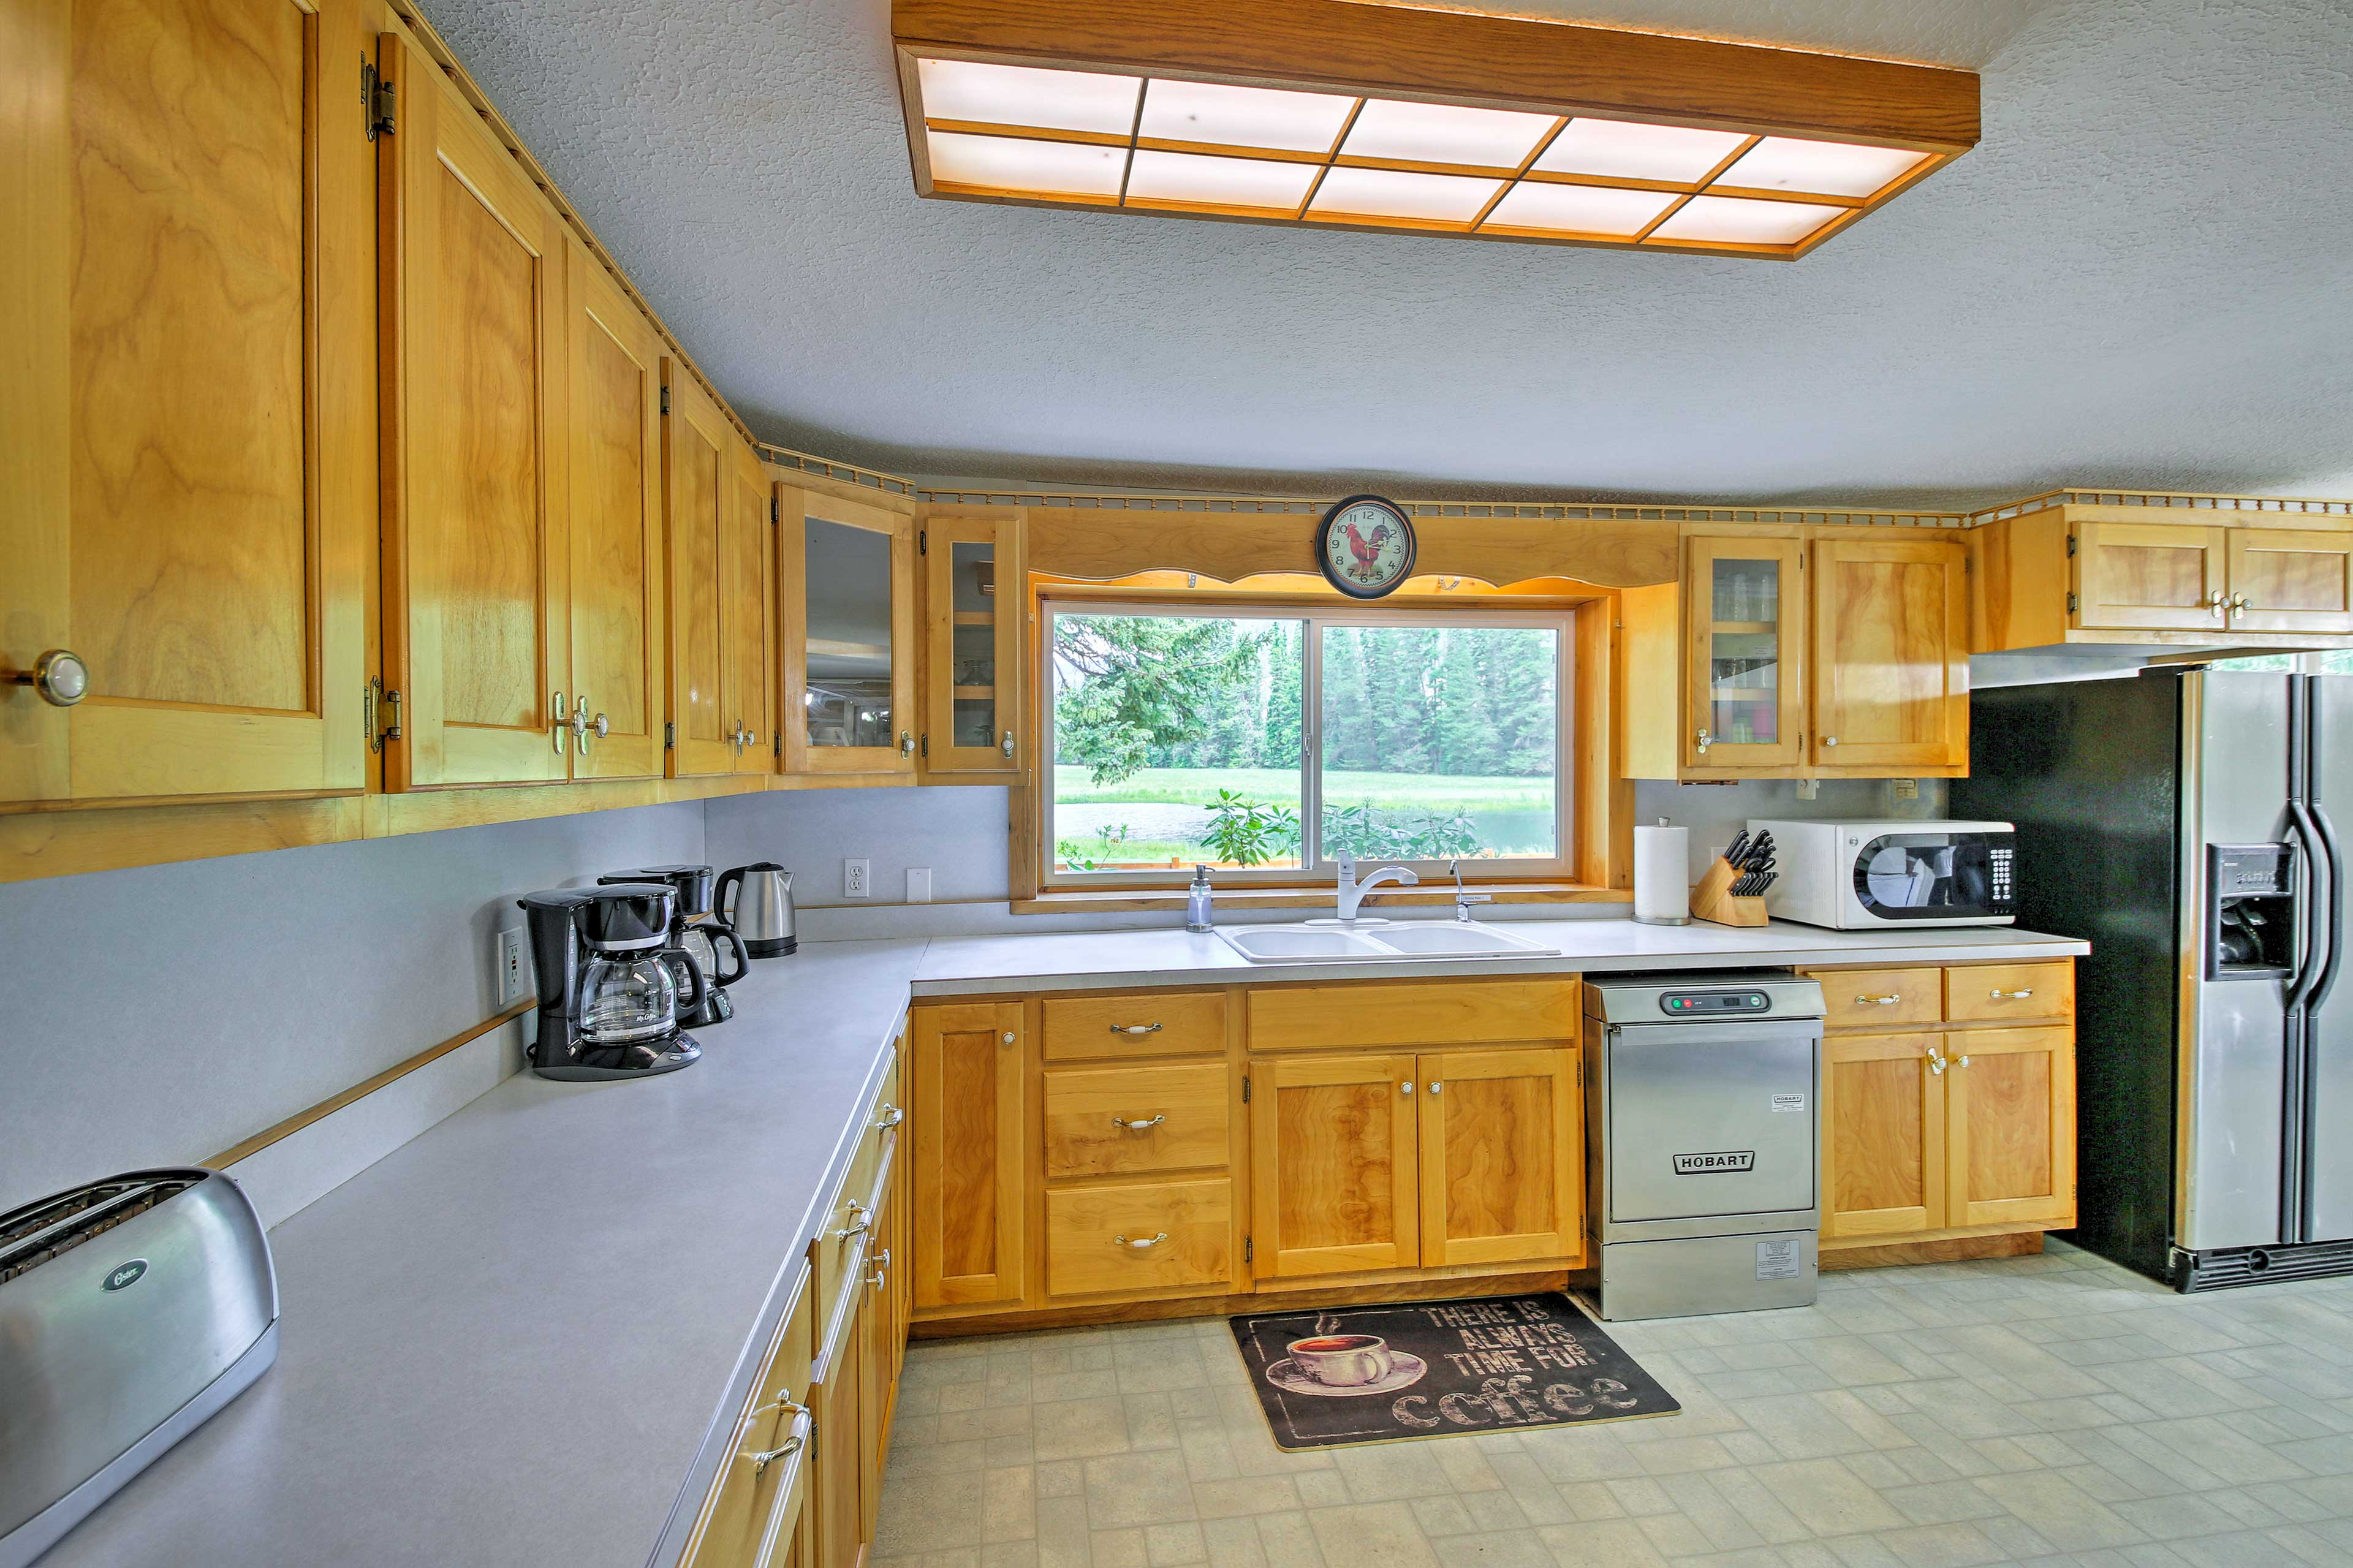 The chef will happily prepare meals in this fully equipped kitchen.